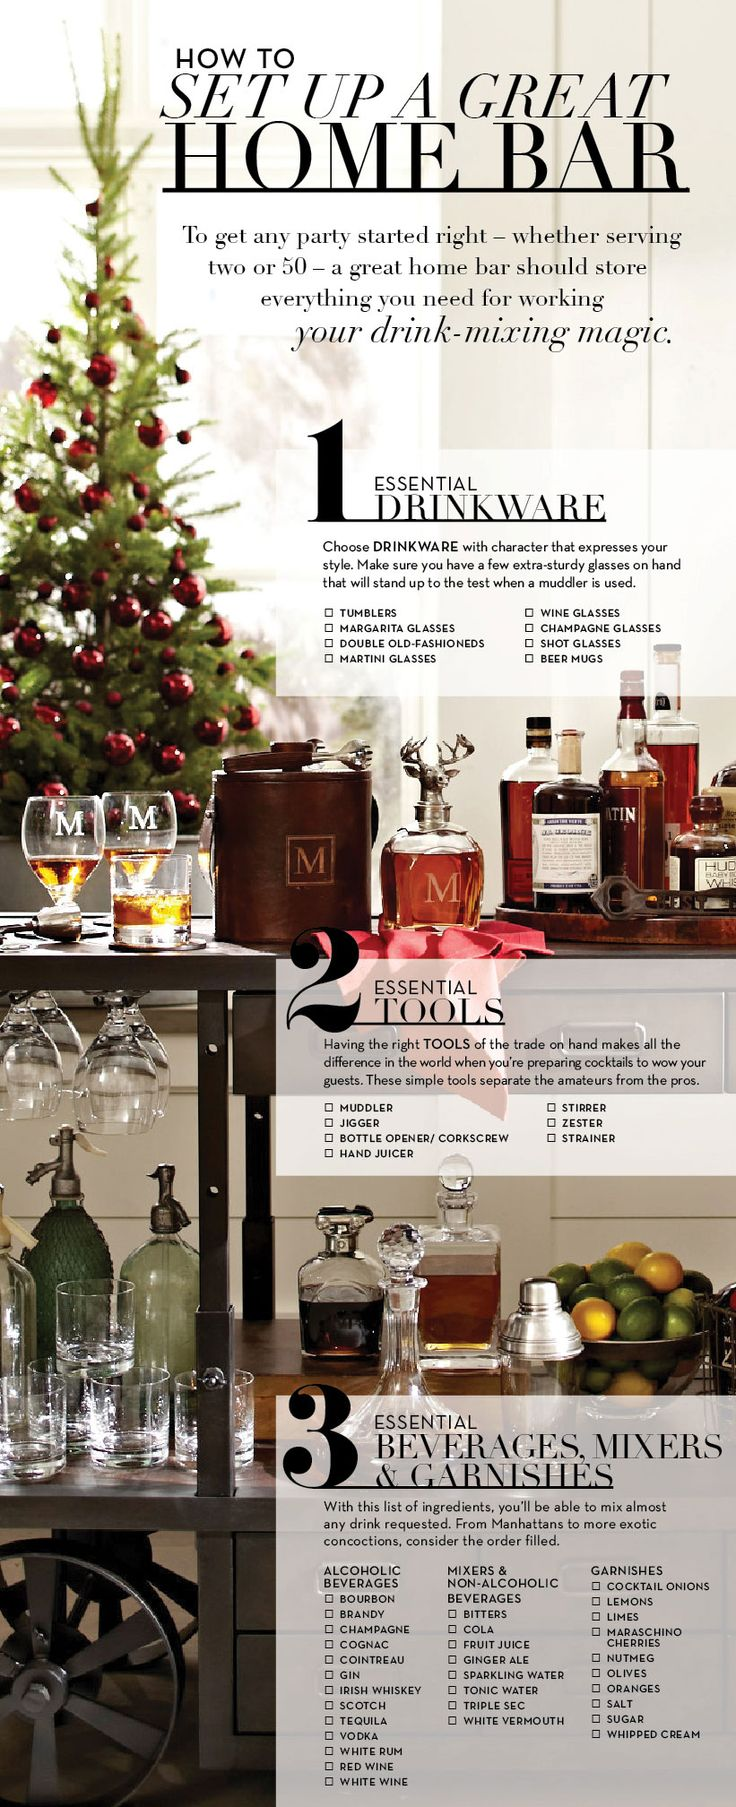 Set Up a Great Home Bar  for the Holidays! http://rstyle.me/n/uftgvnyg6